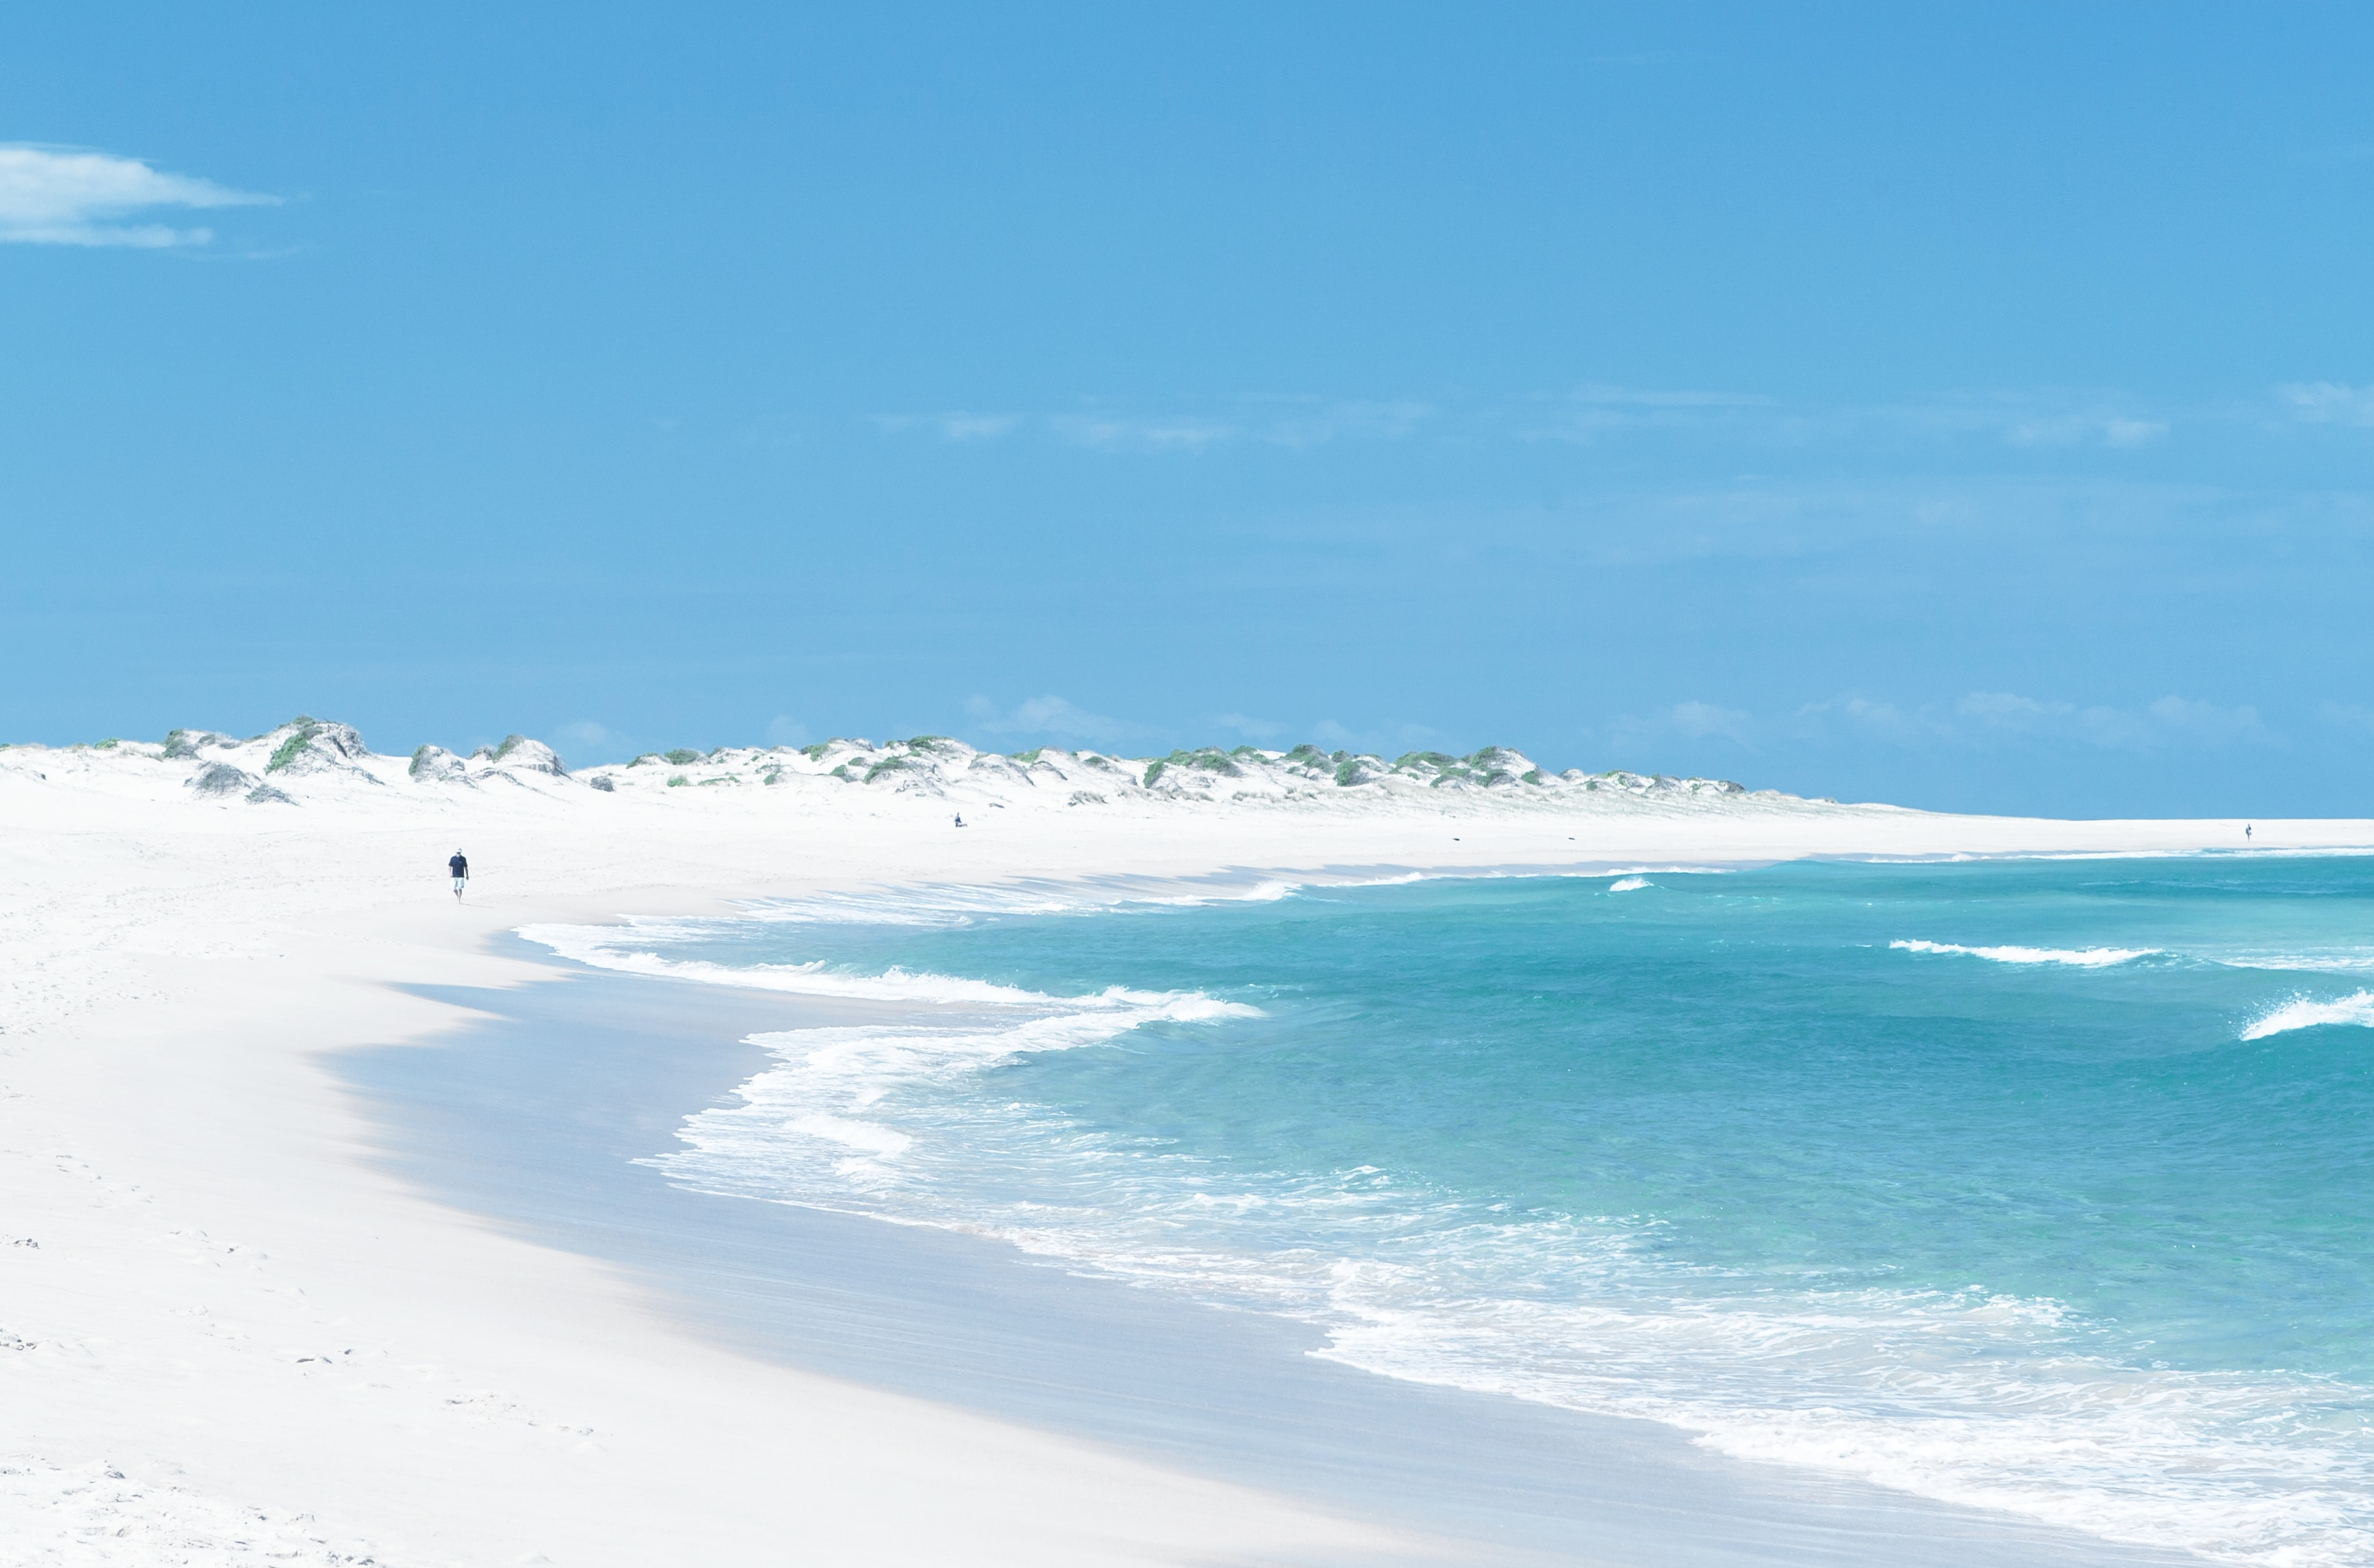 landscape photograph of white sand beach